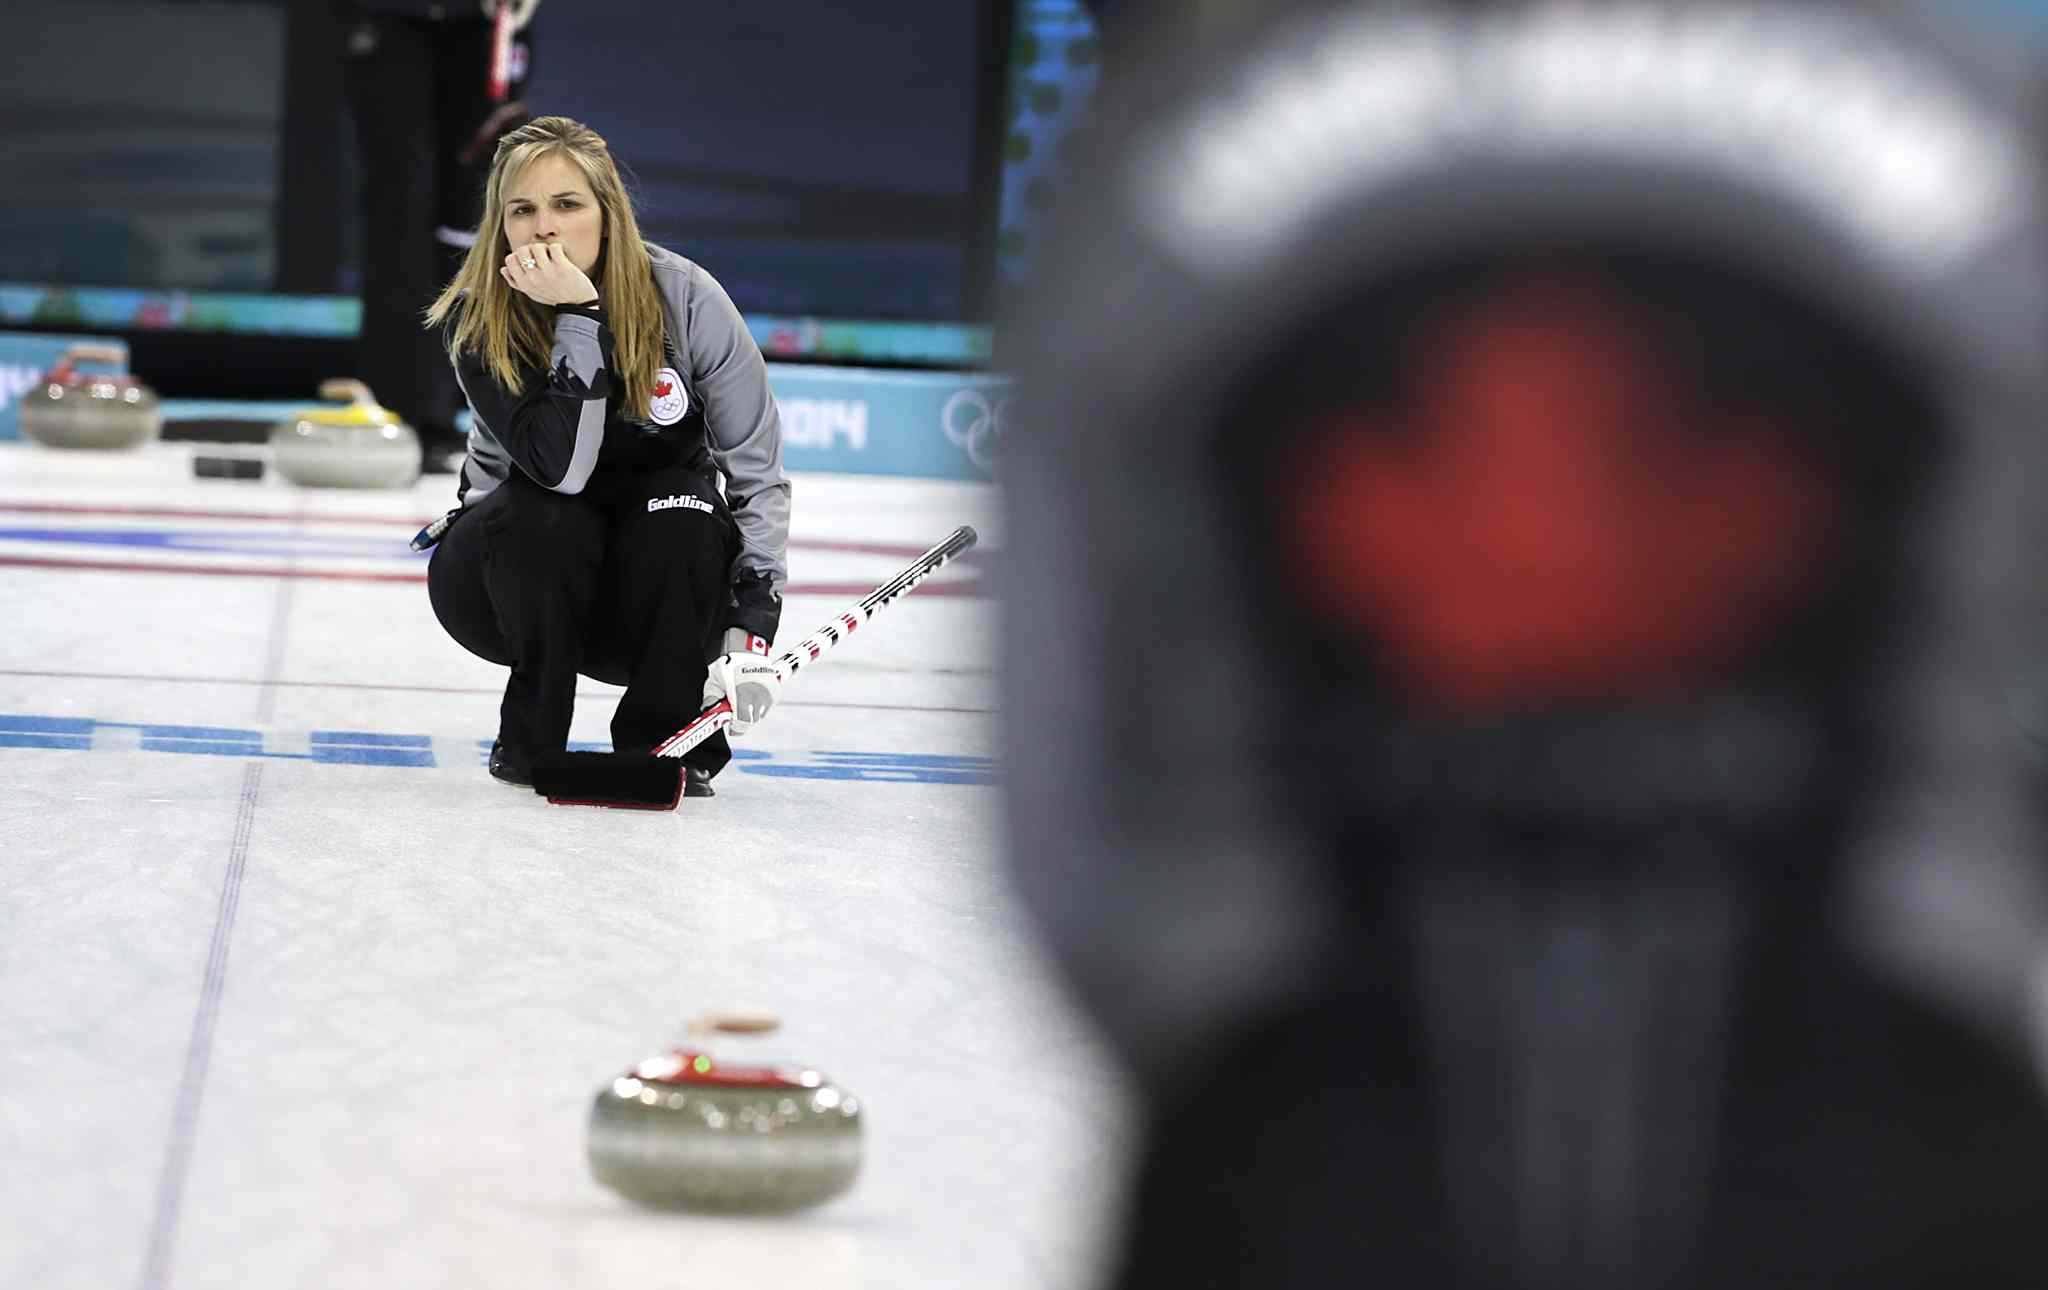 Jennifer Jones watches a rock during a training session at the 2014 Winter Olympics.